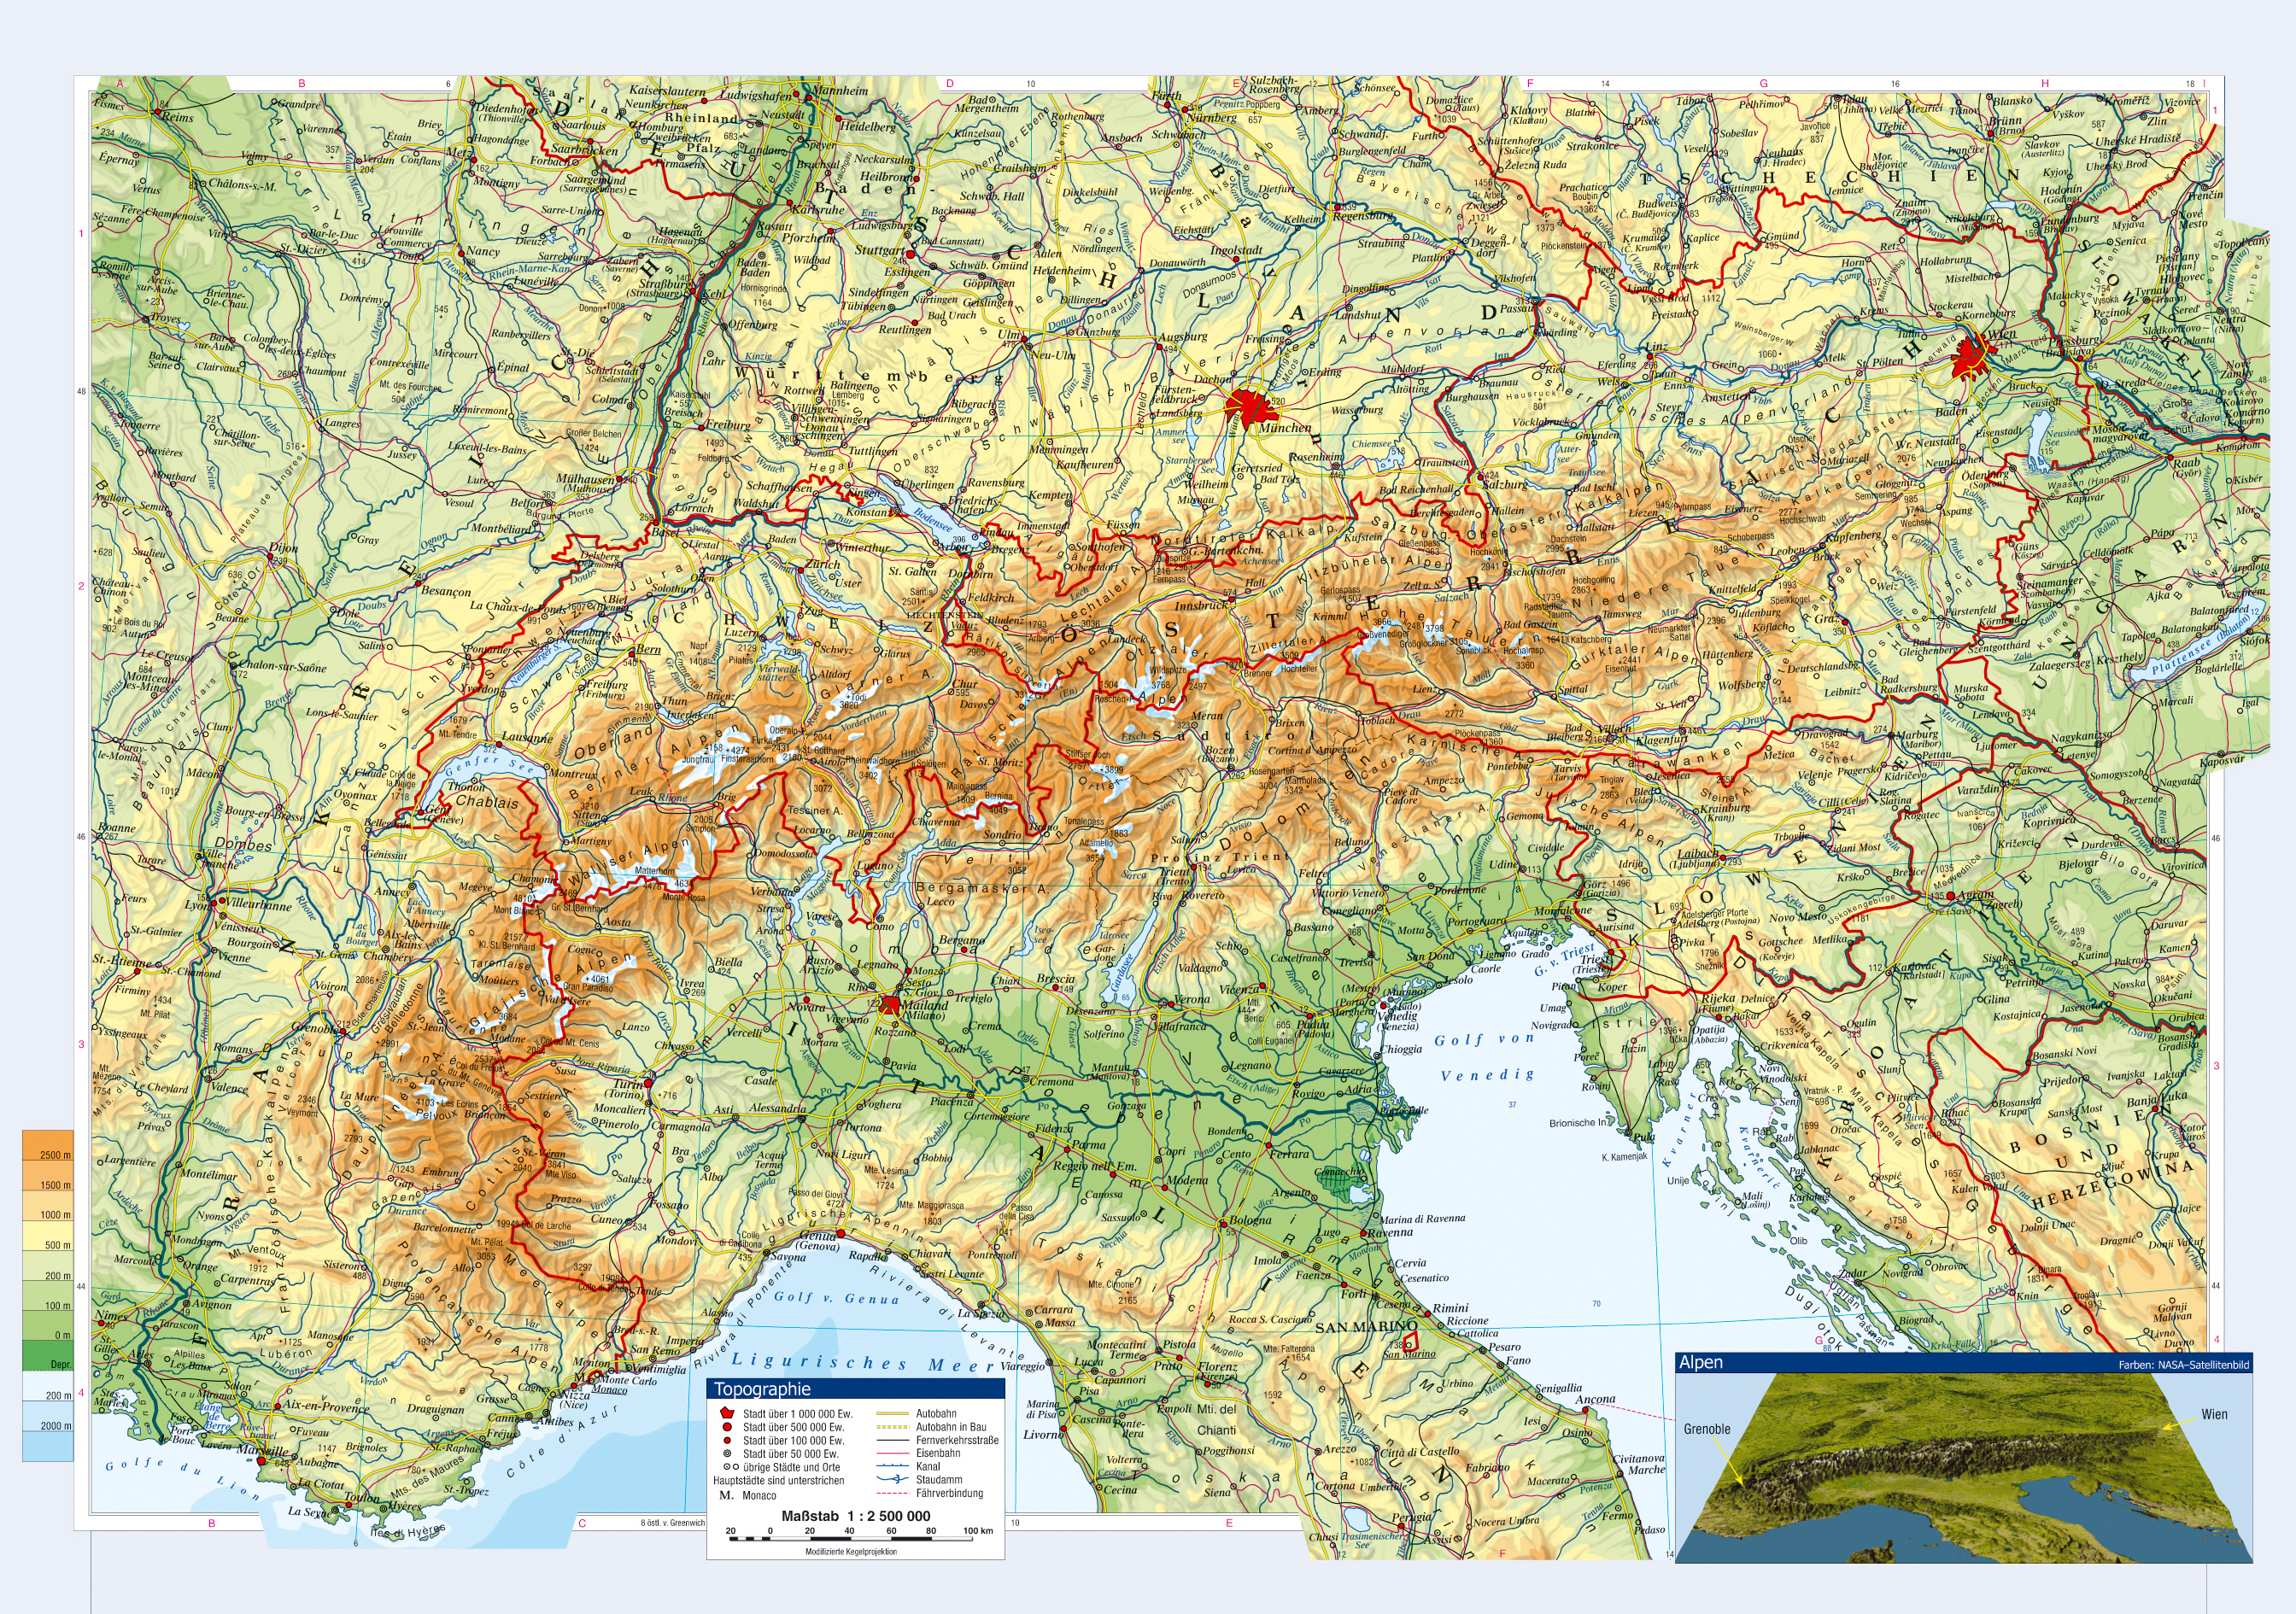 Large topographical map of Austria and neighboring countries with cities and